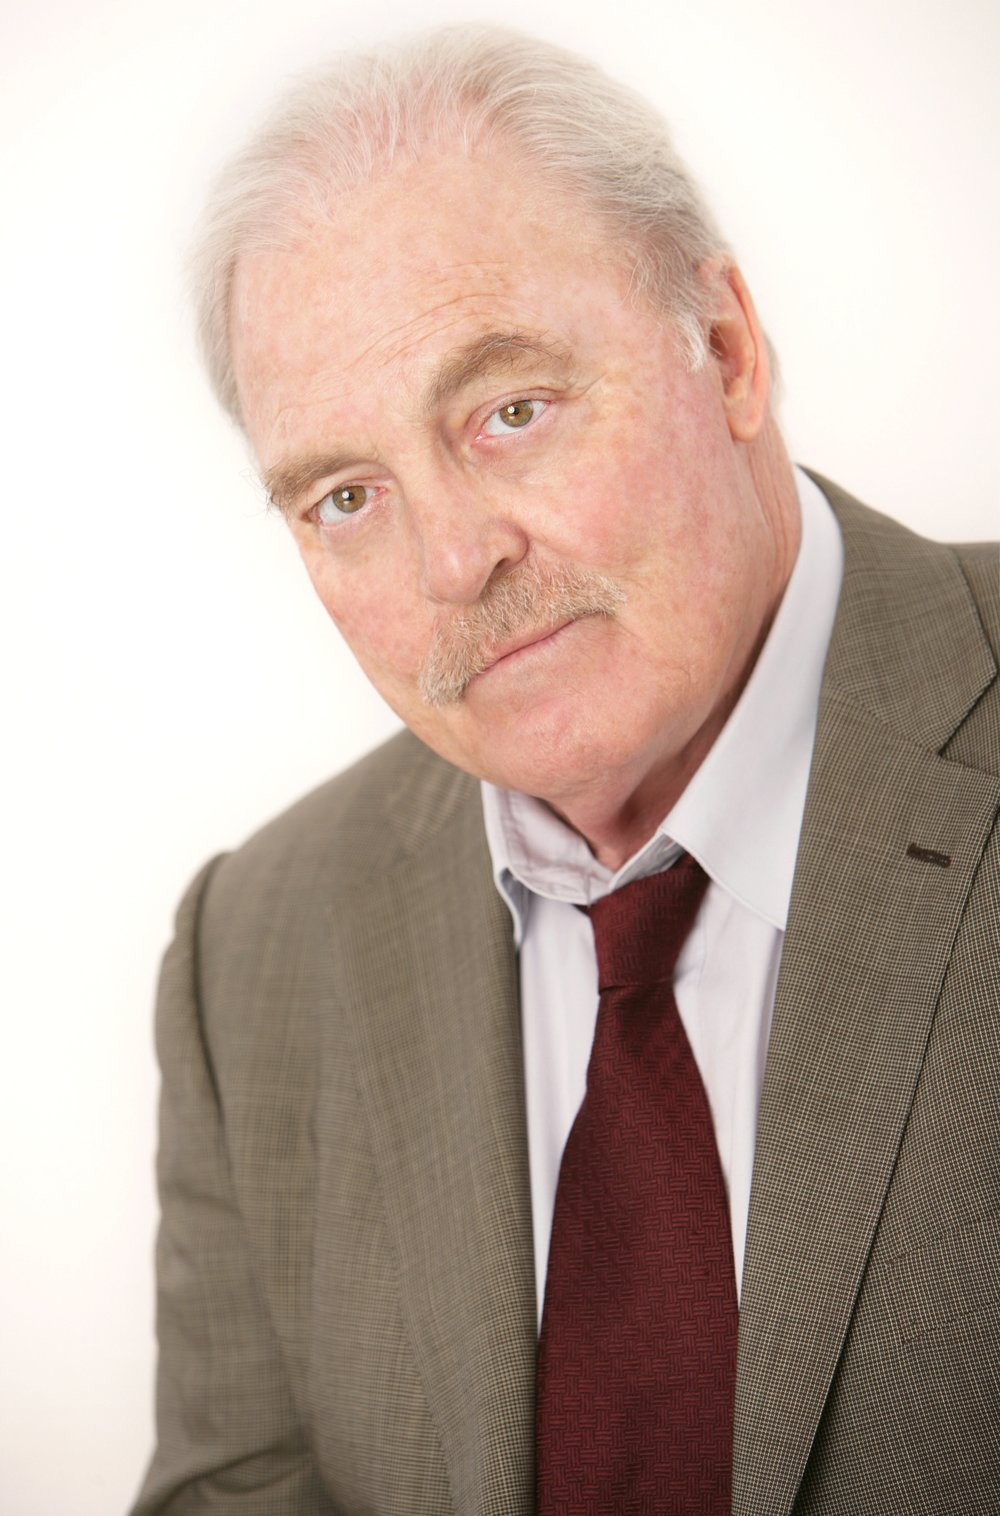 Stacy Keach headshot by Shandon Photography